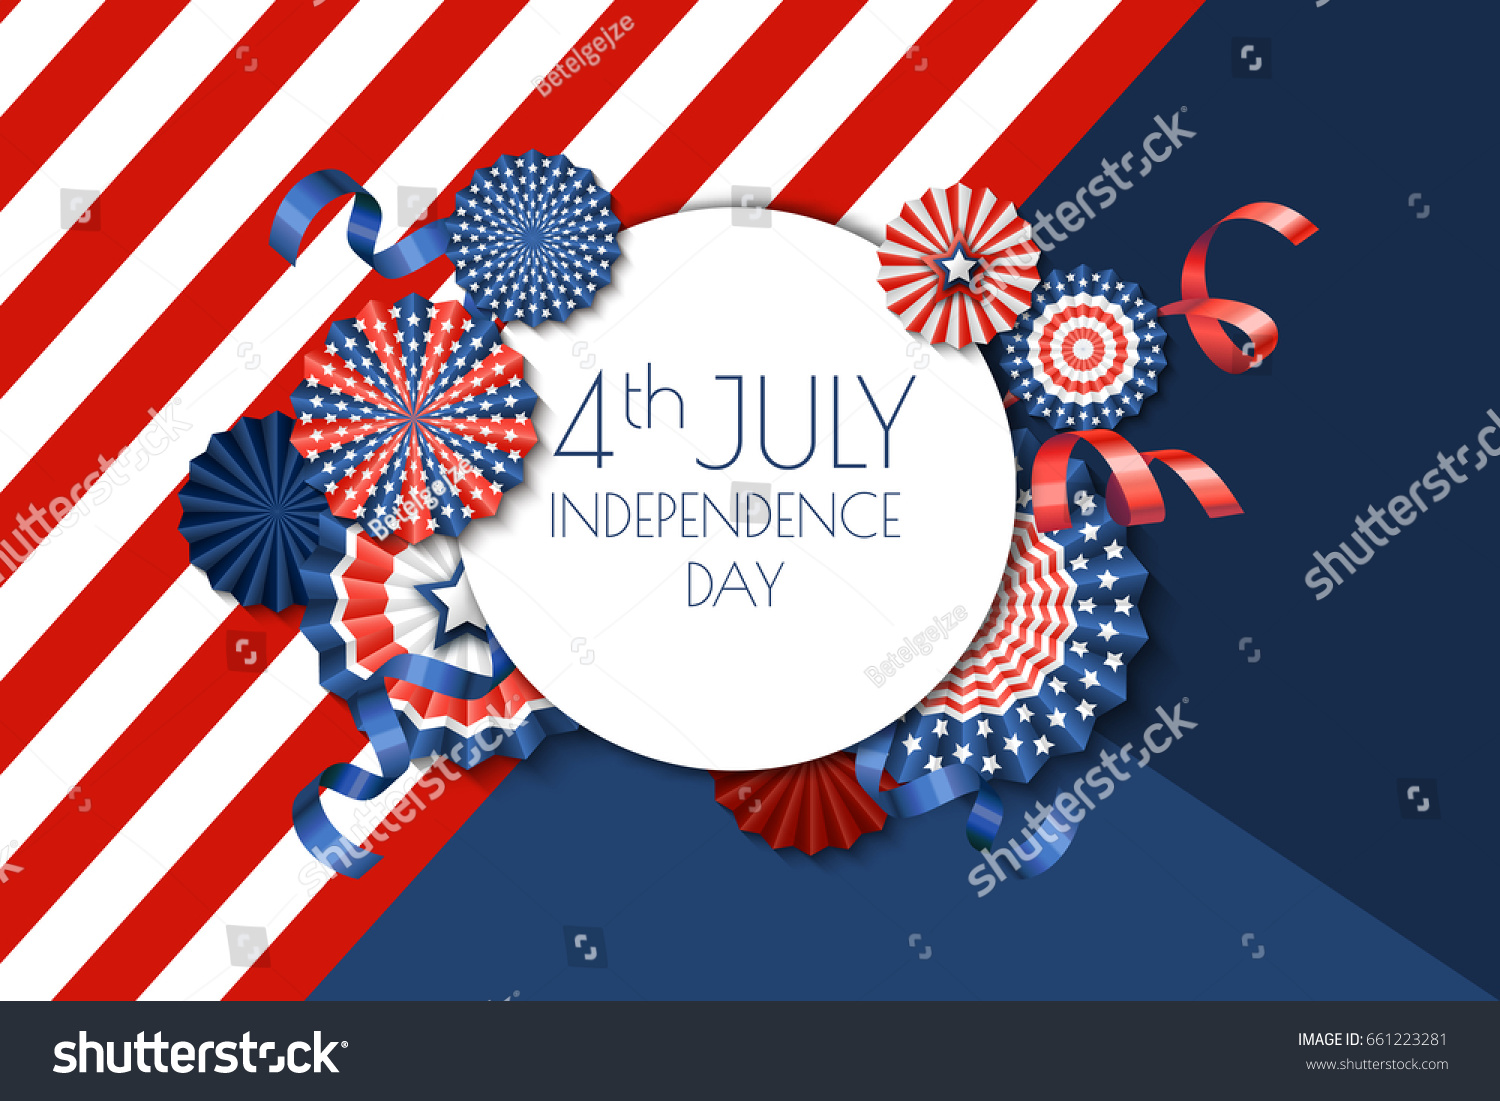 4th july usa independence day vector stock vector 661223281